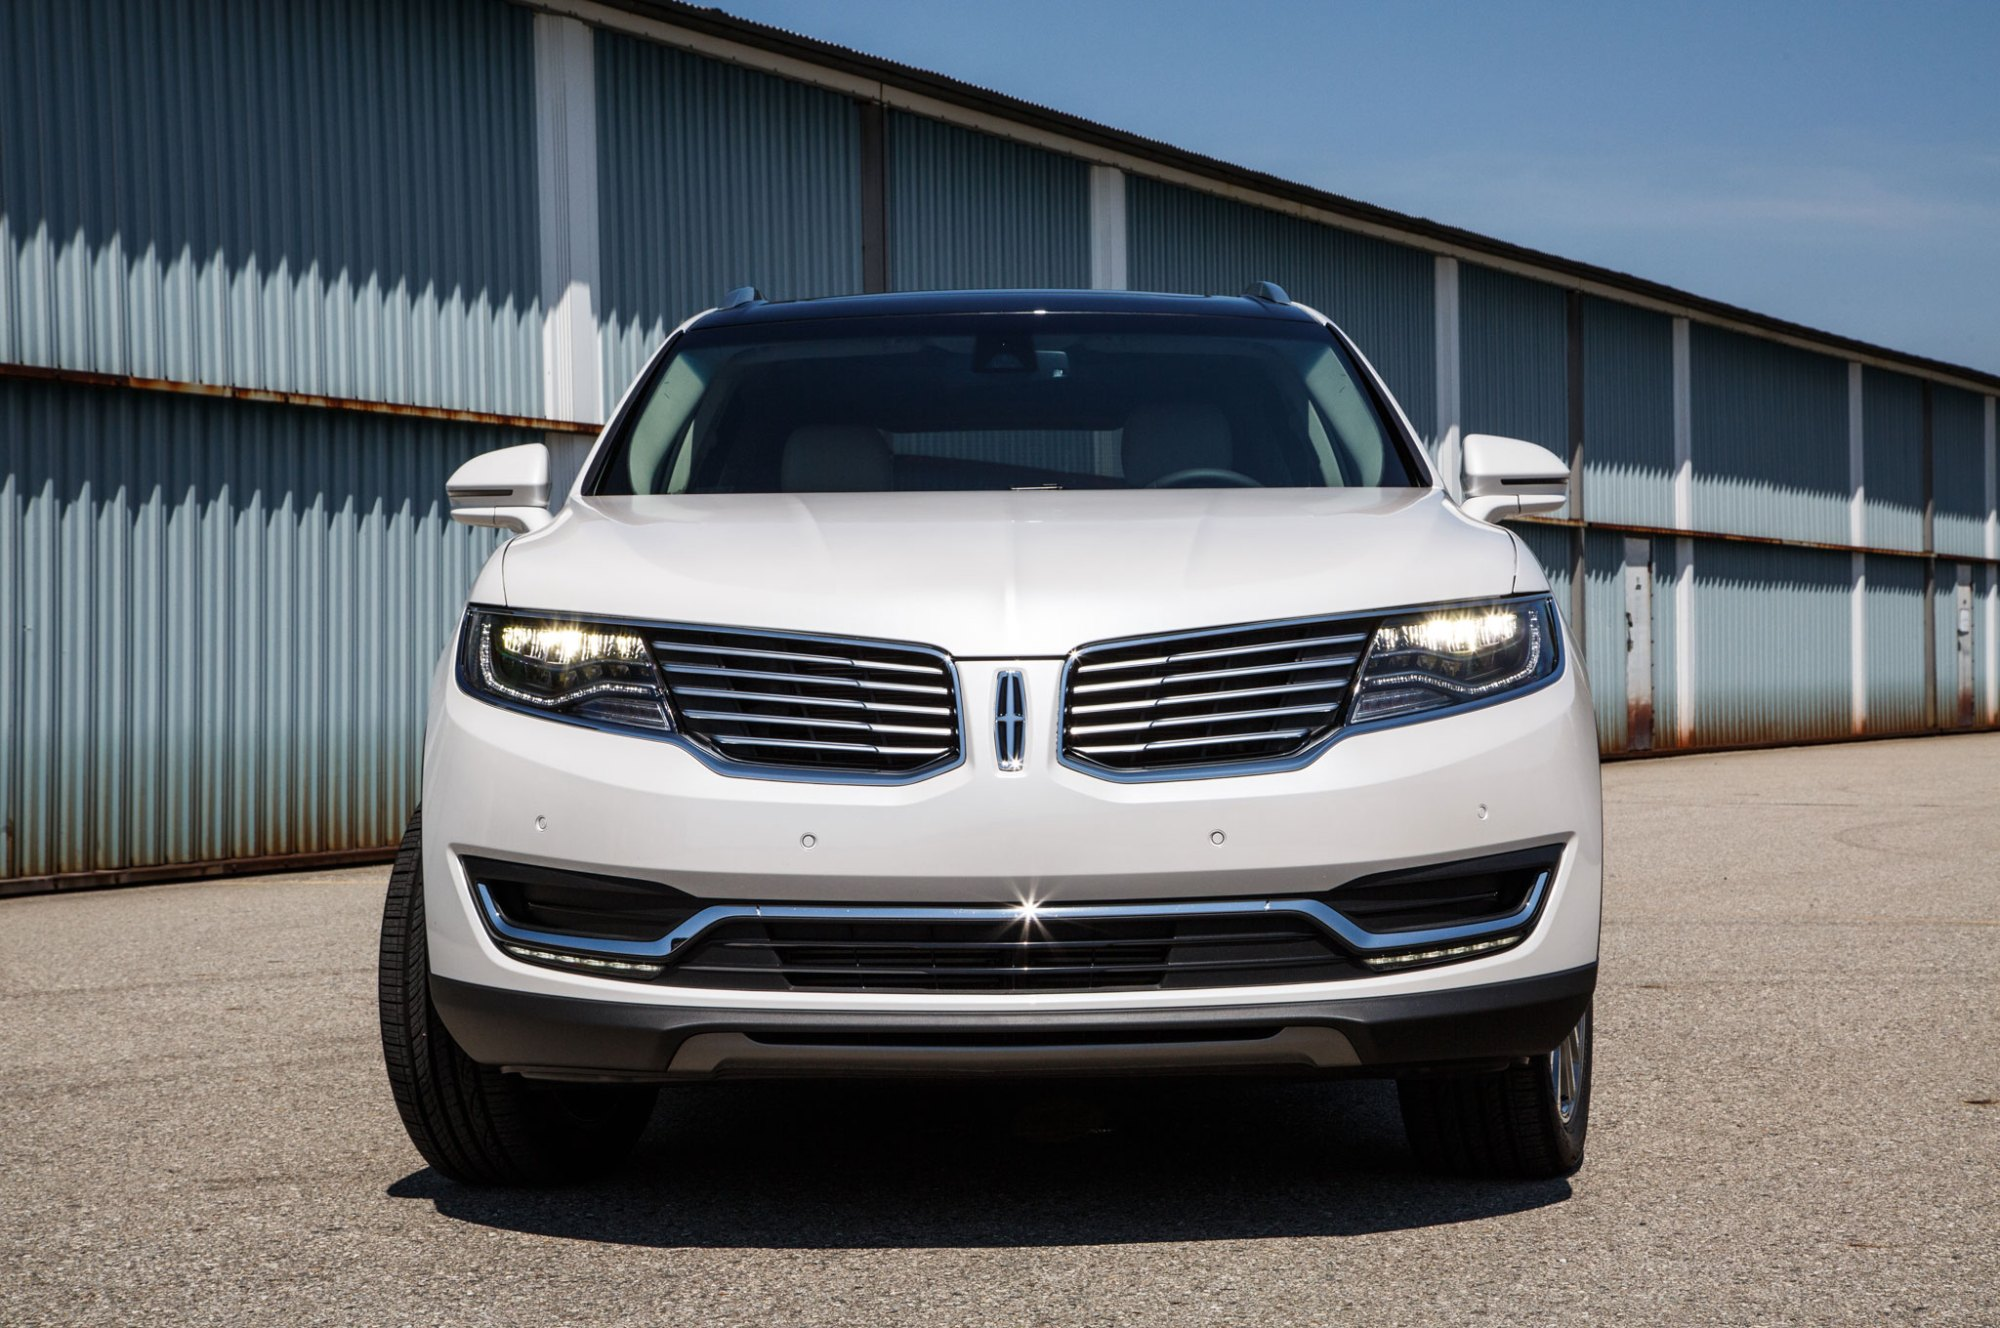 hight resolution of 2016 lincoln mkx front end 03